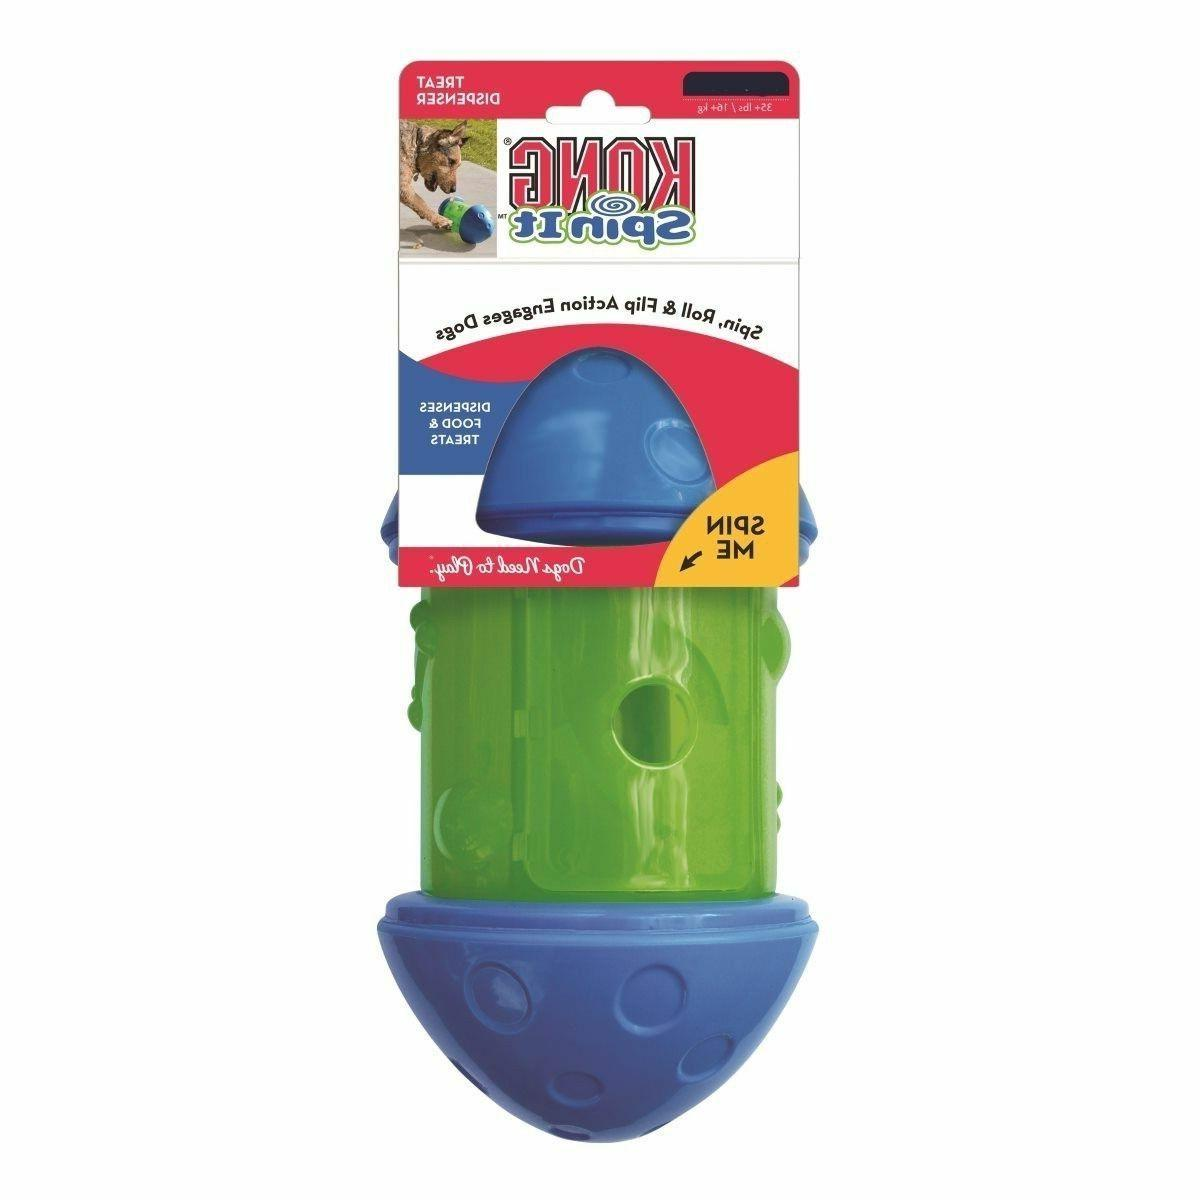 Kong Spin It Treat Dispensing Dog Toy Small  Puzzle Interact